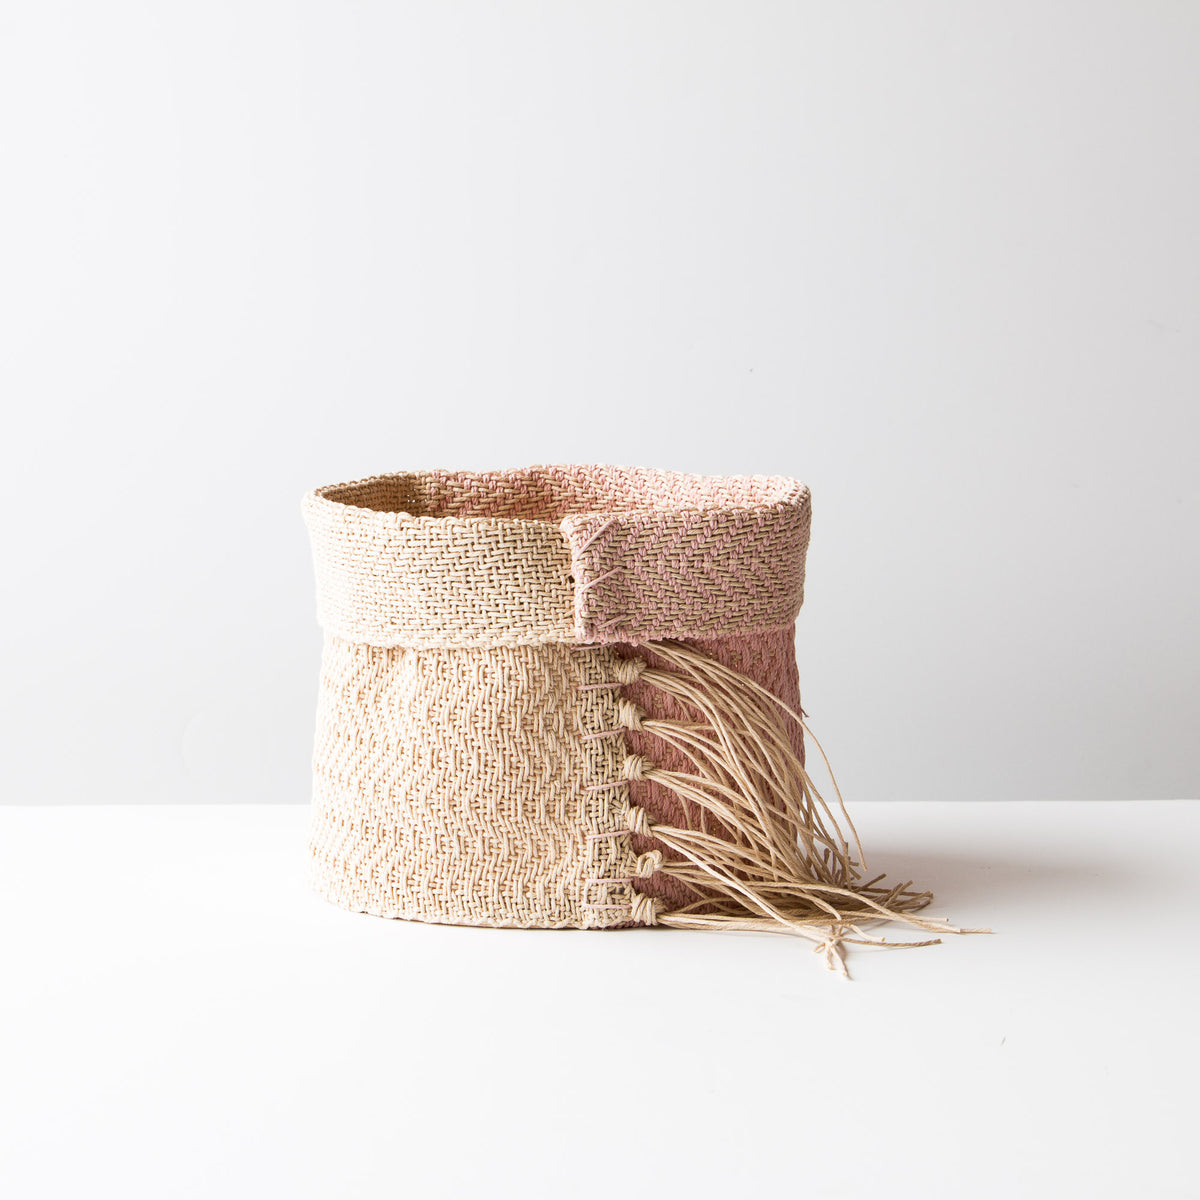 Pink & Ecru - Hemp Table Basket (Medium) - Handwoven in Montreal, Quebec, Canada - Sold by Chic & Basta